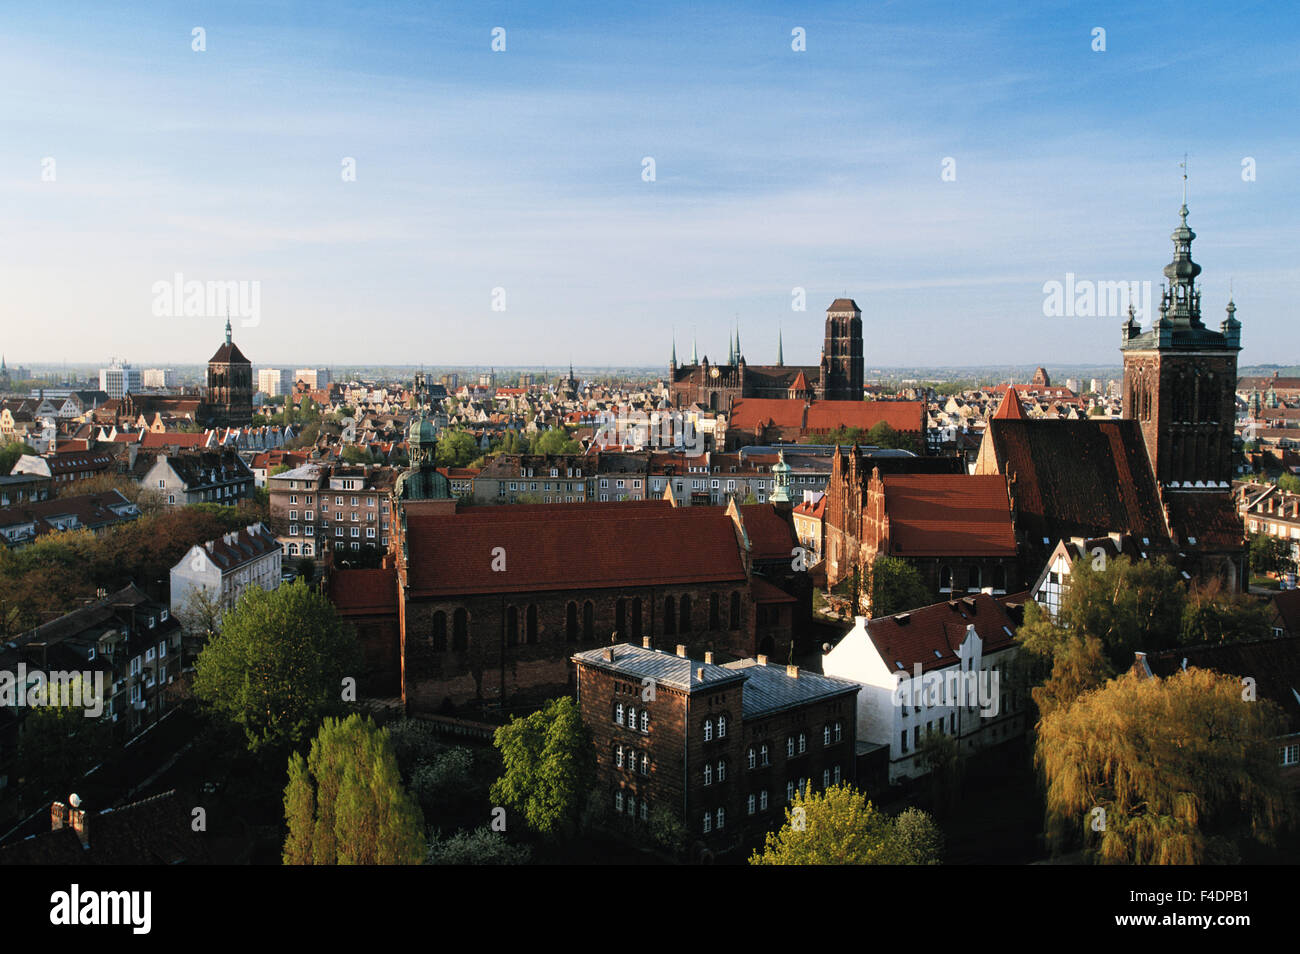 Poland, Pomerania, Gdansk, St Mary's and St Joseph's churches at morning. (Large format sizes available) - Stock Image